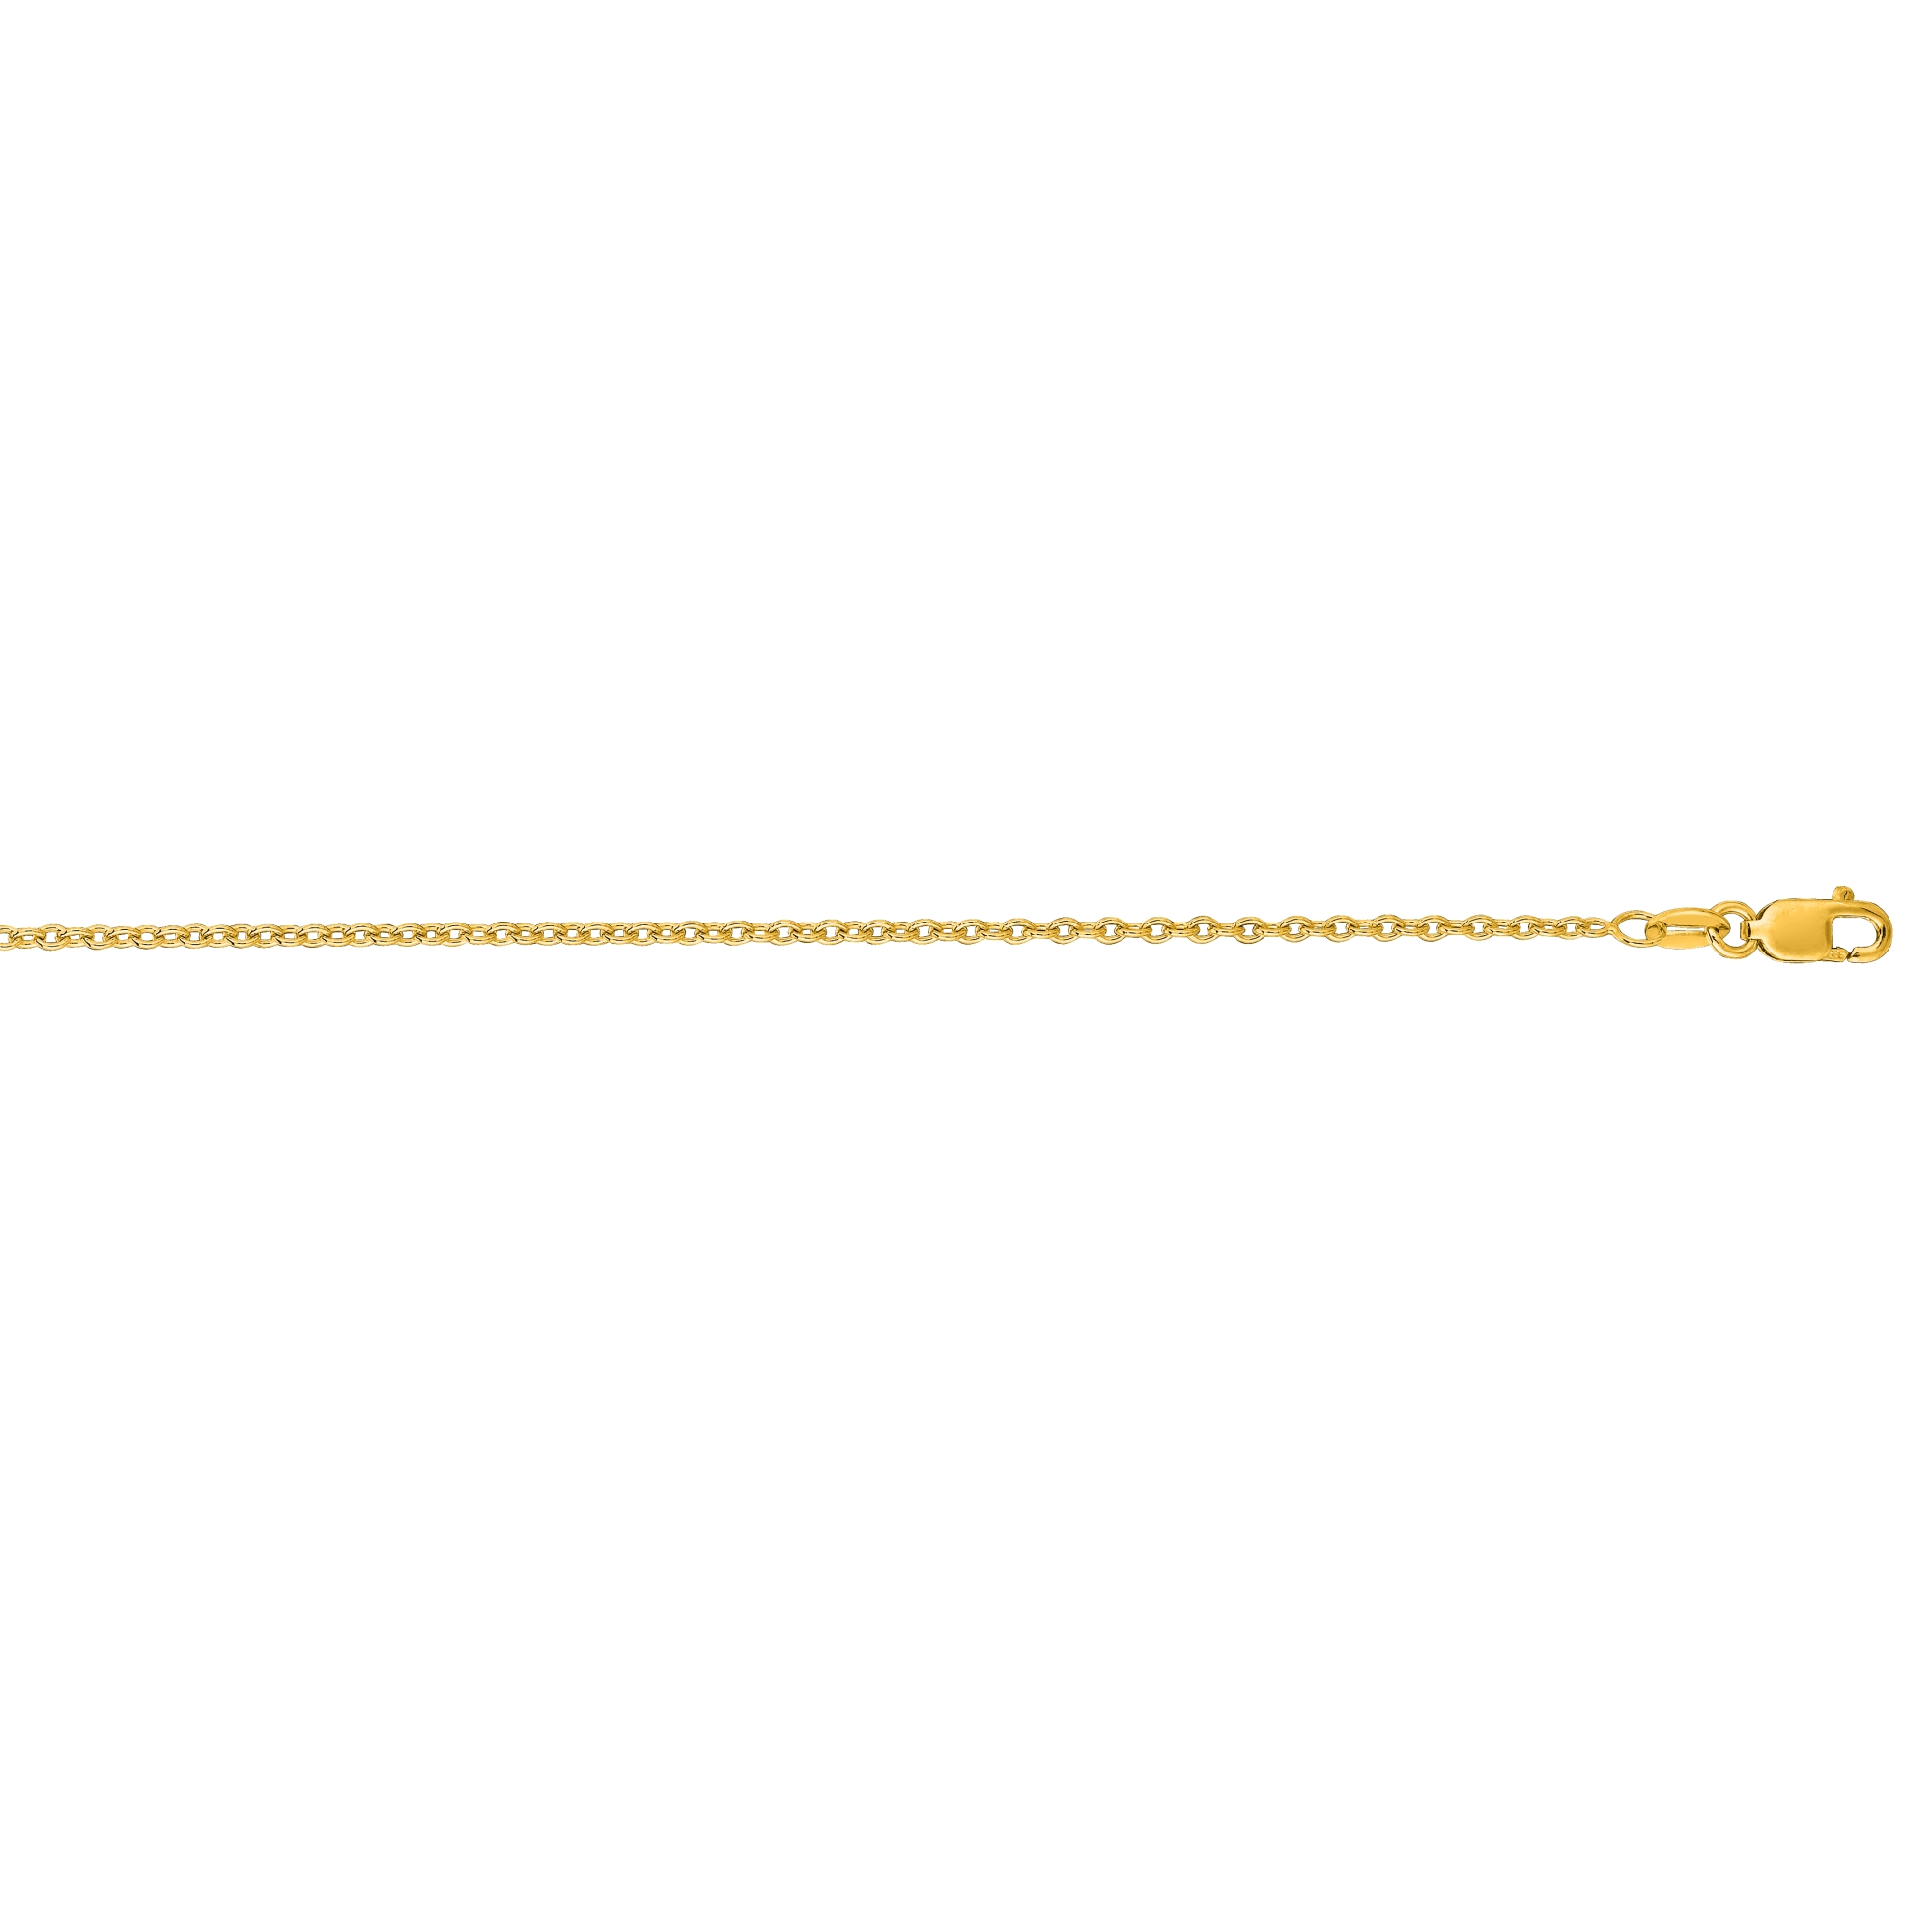 LUXURMAN Solid 14k Gold Cable Chain For Men & Women Round 1.5mm Wide